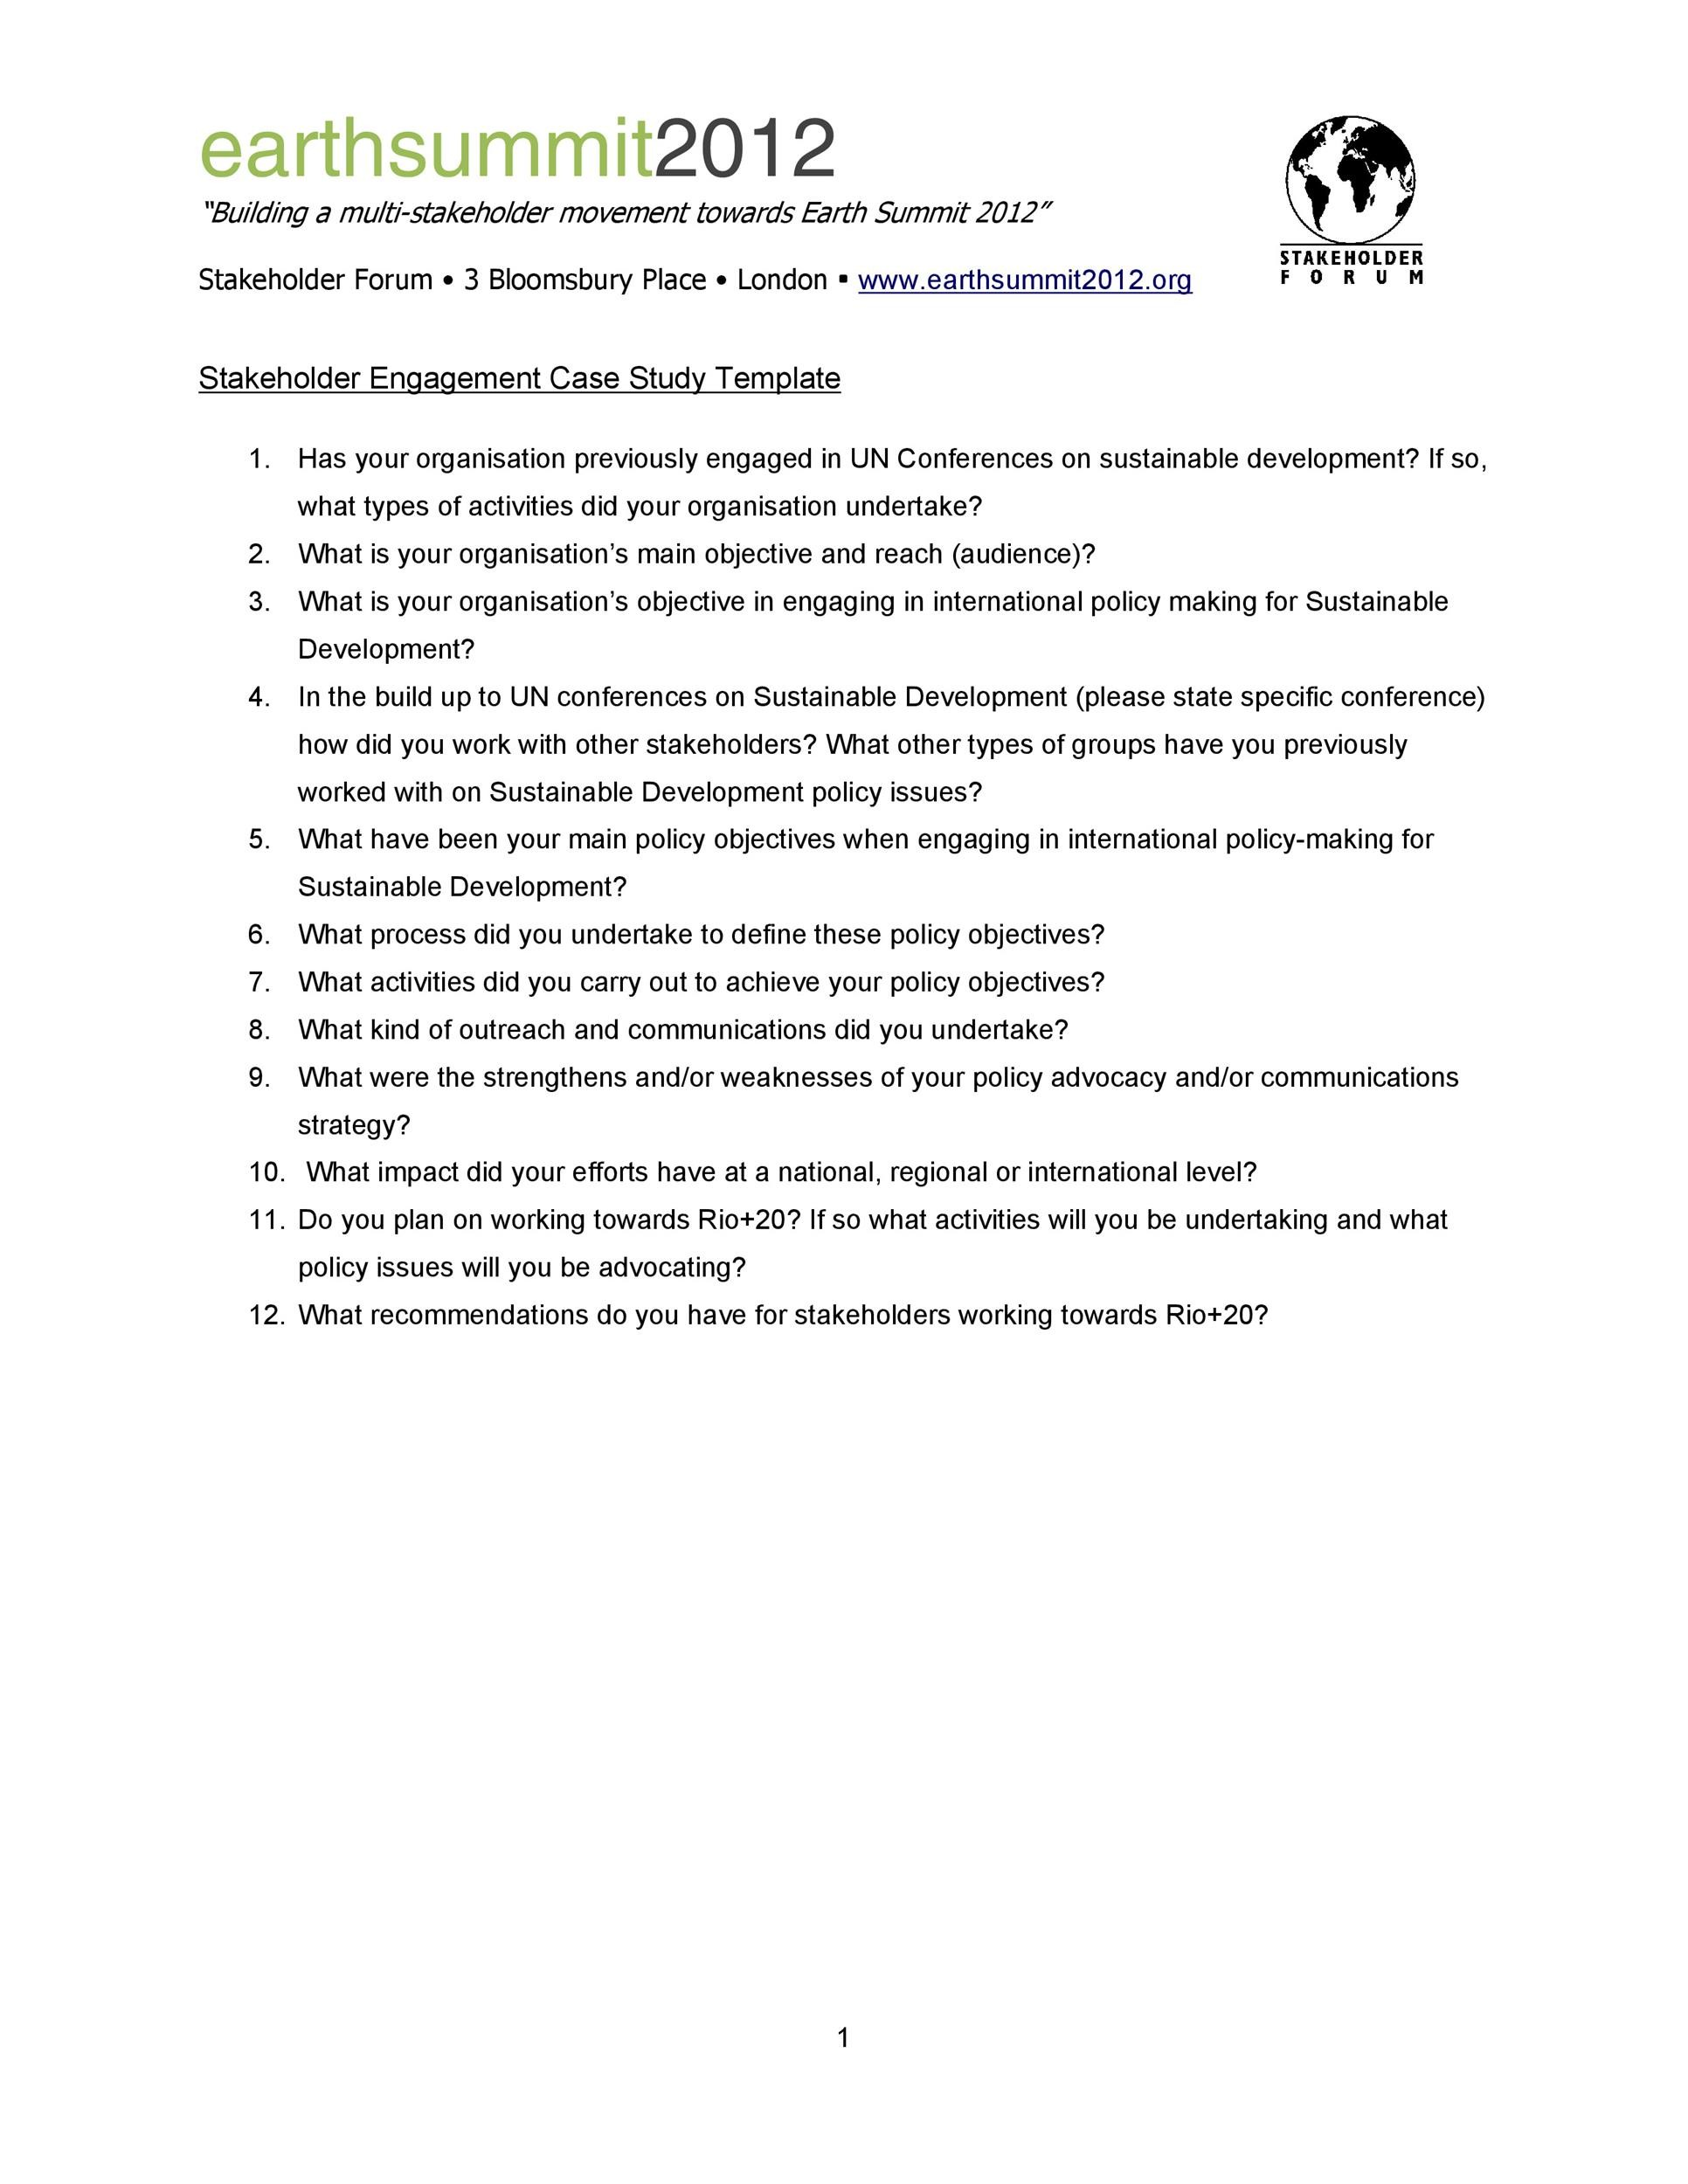 Free Case Study Template 42